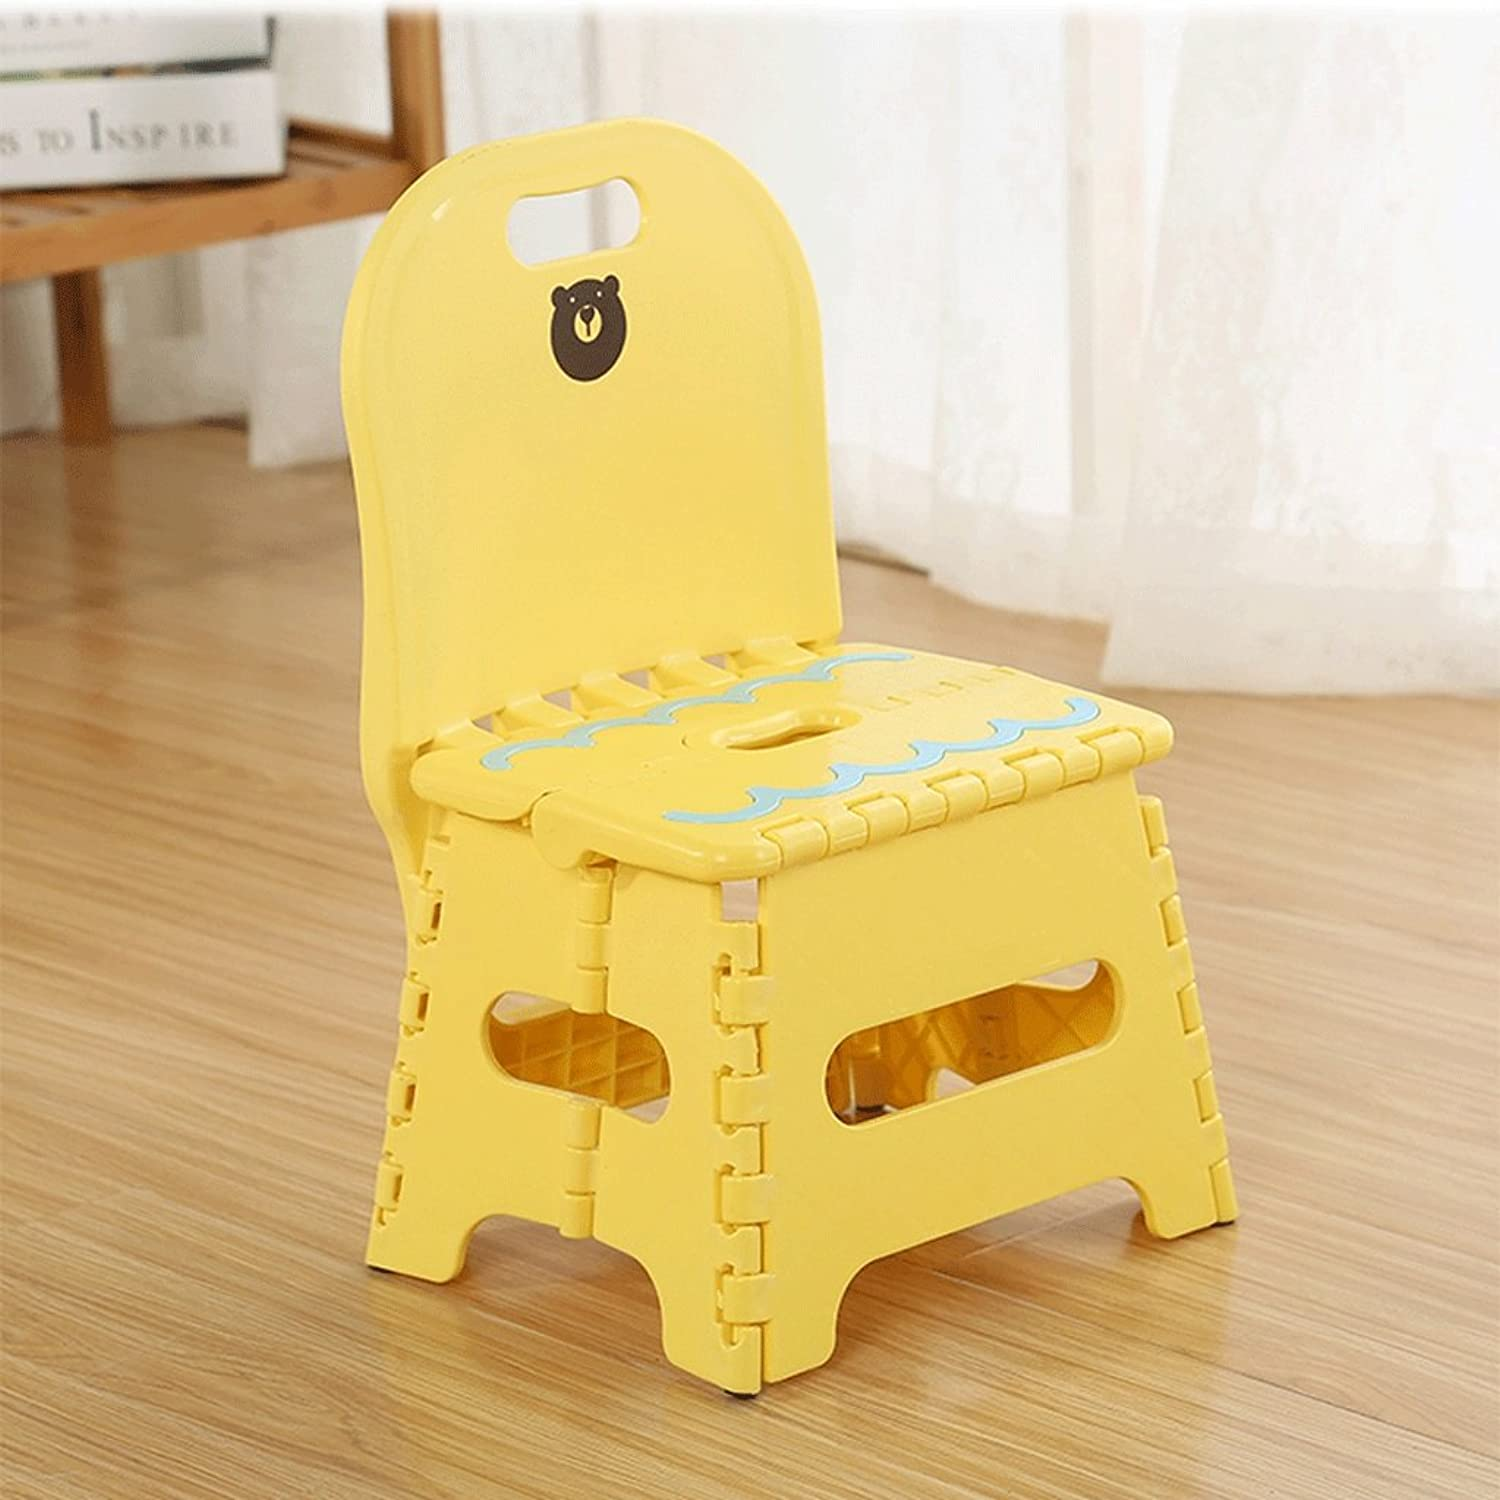 Folding Step Stool - Height Premium Heavy Duty Foldable Stool for Kids & Adults, Kitchen Garden Bathroom Stepping Stool (color   Yellow)